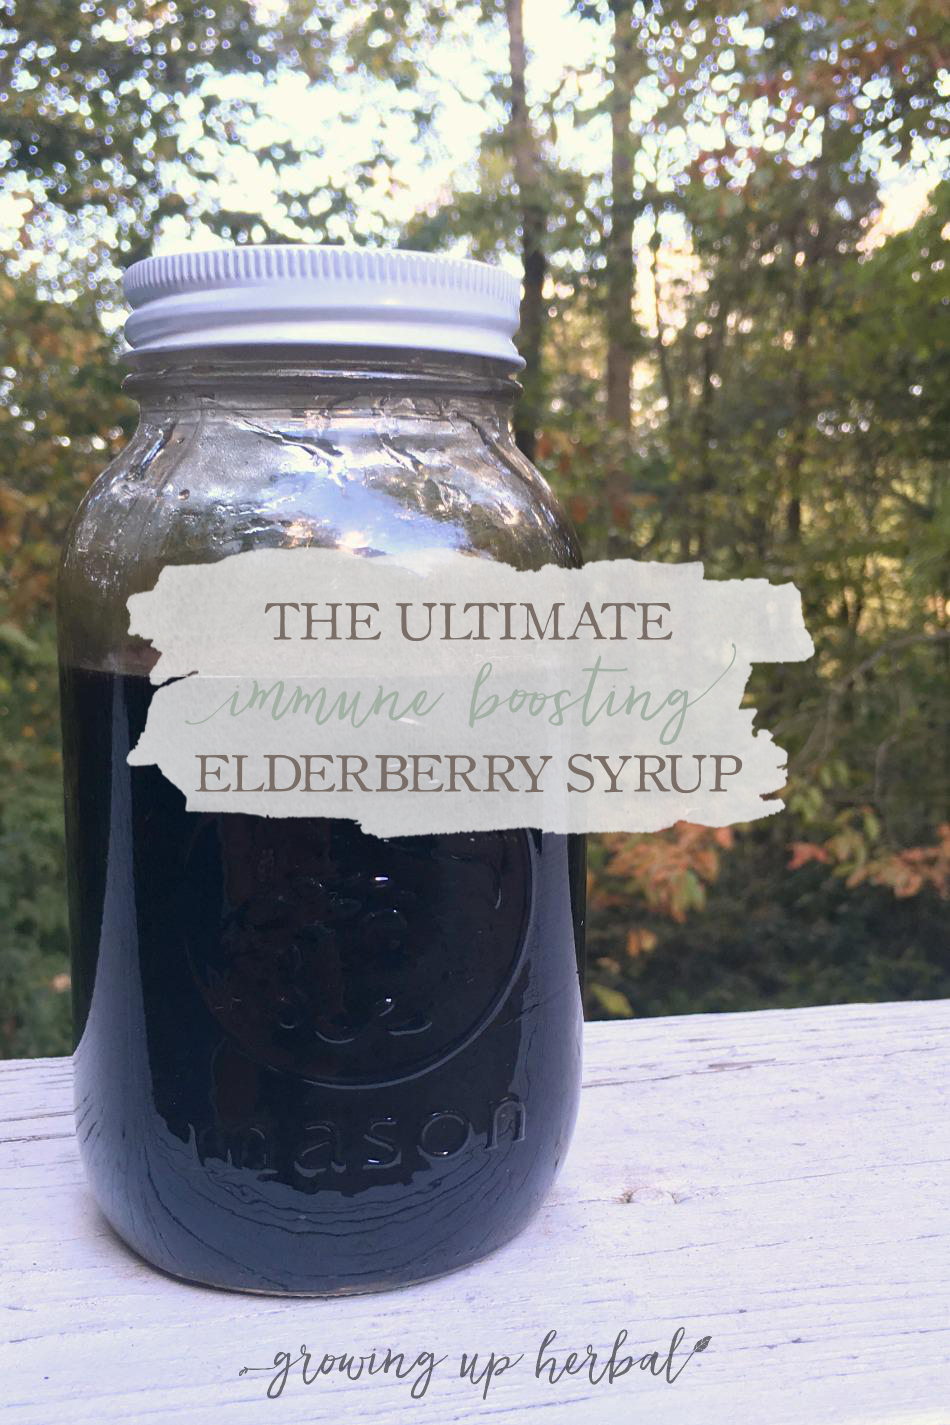 The Ultimate Immune Boosting Elderberry Syrup Growing Up